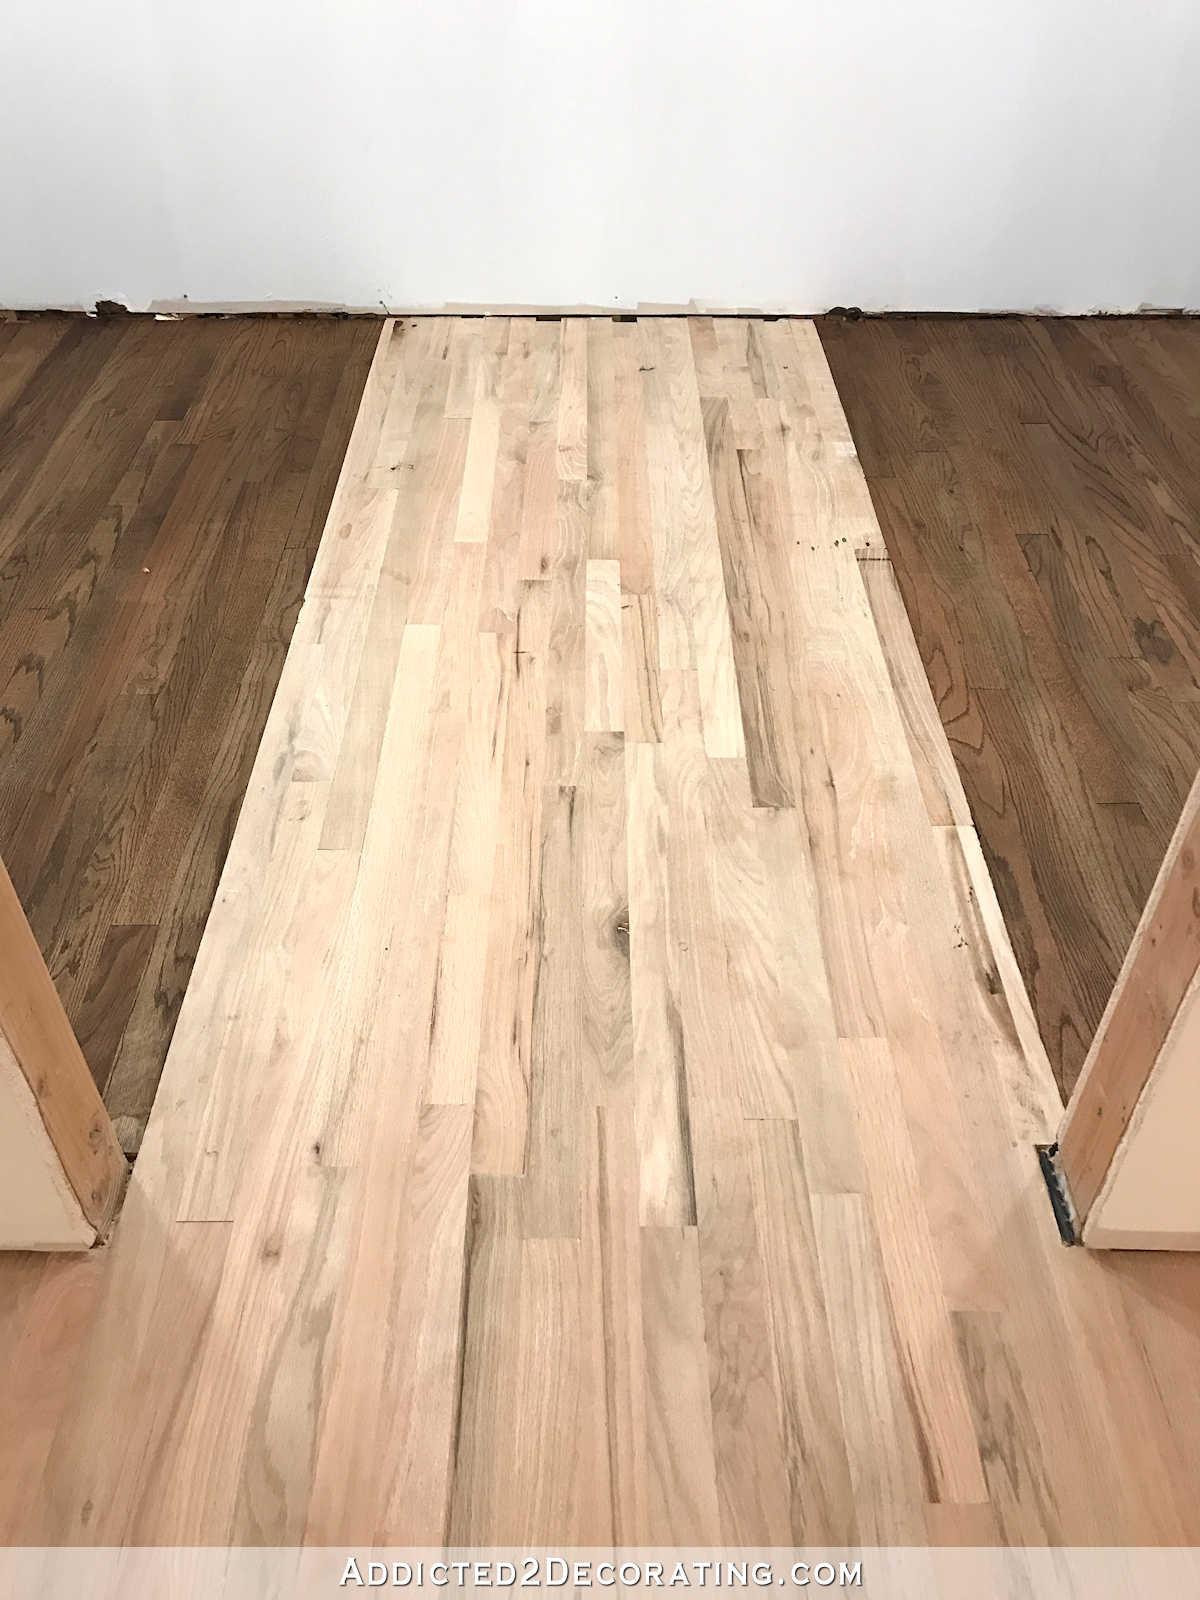 how to restore hardwood floors yourself of adventures in staining my red oak hardwood floors products process within staining red oak hardwood floors 11 stain on left and right sides of the